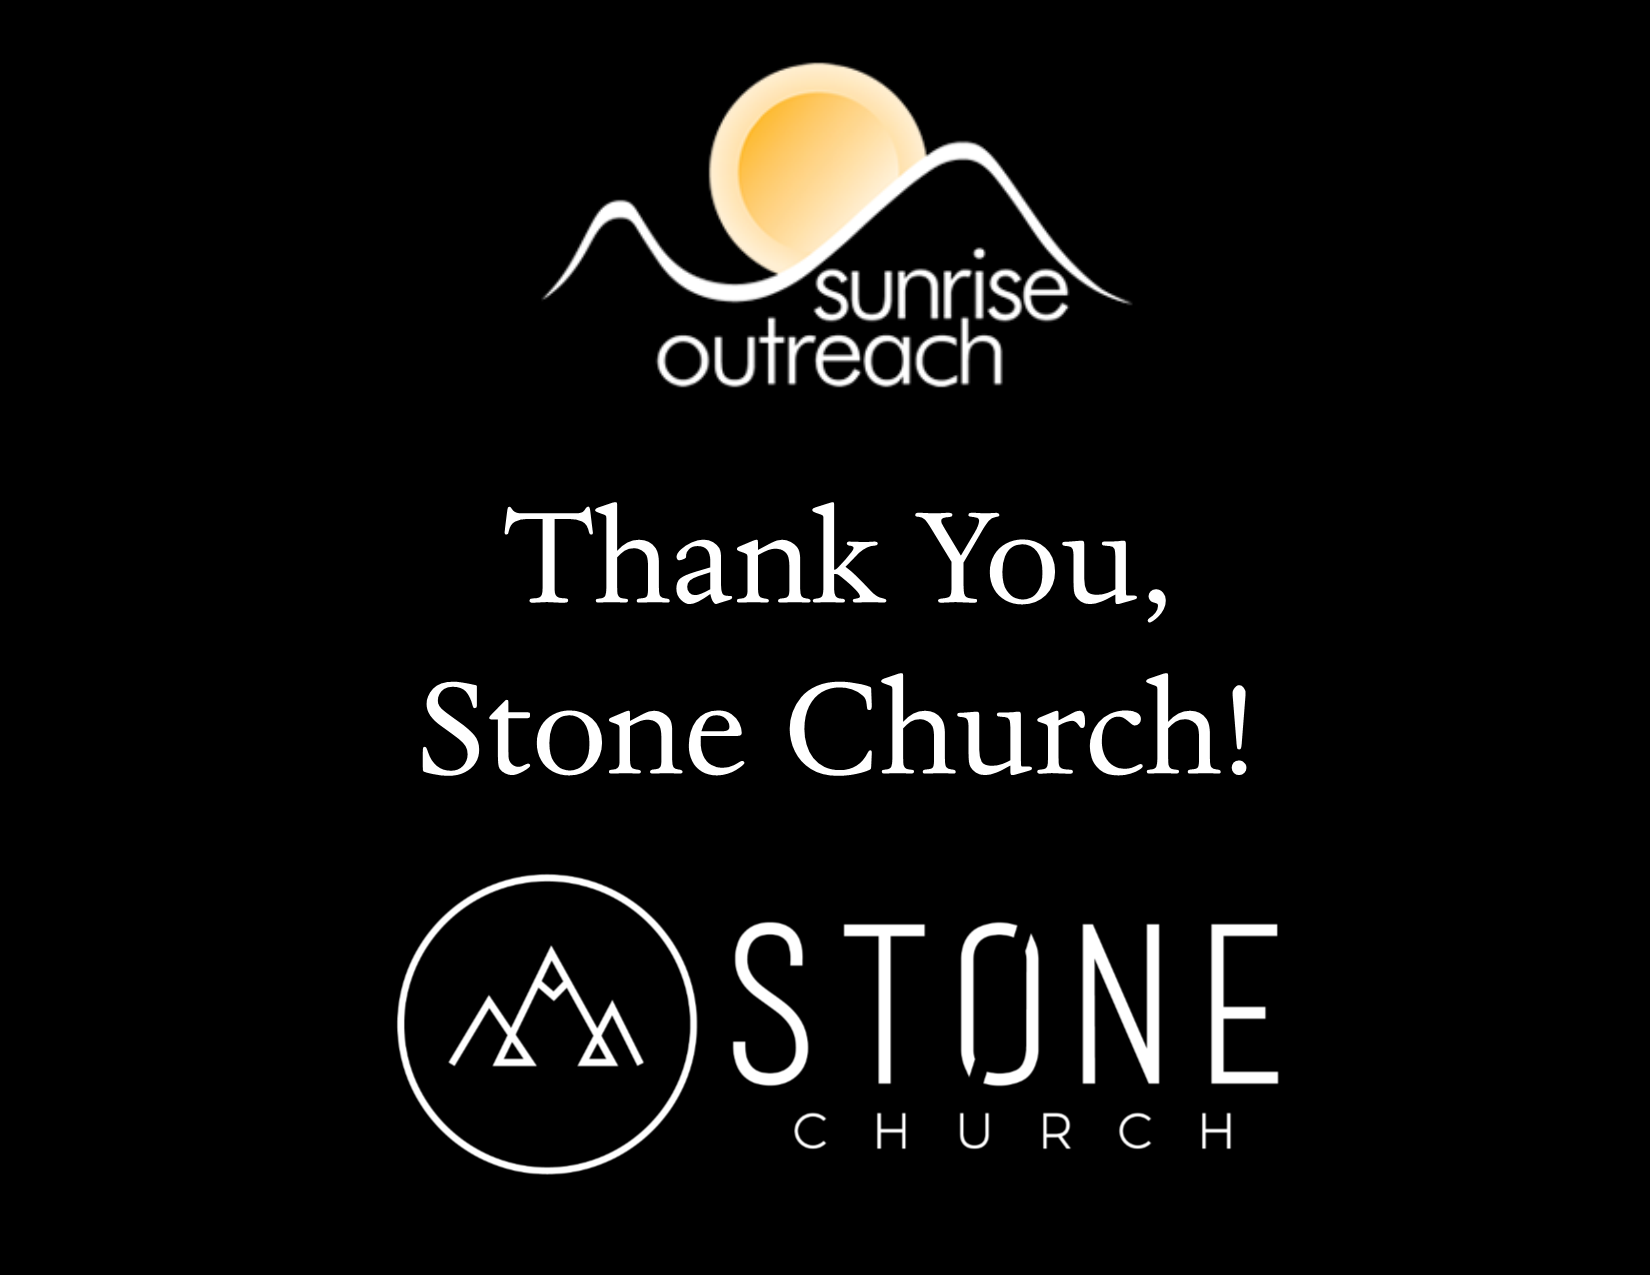 Thank you, Stone Church!